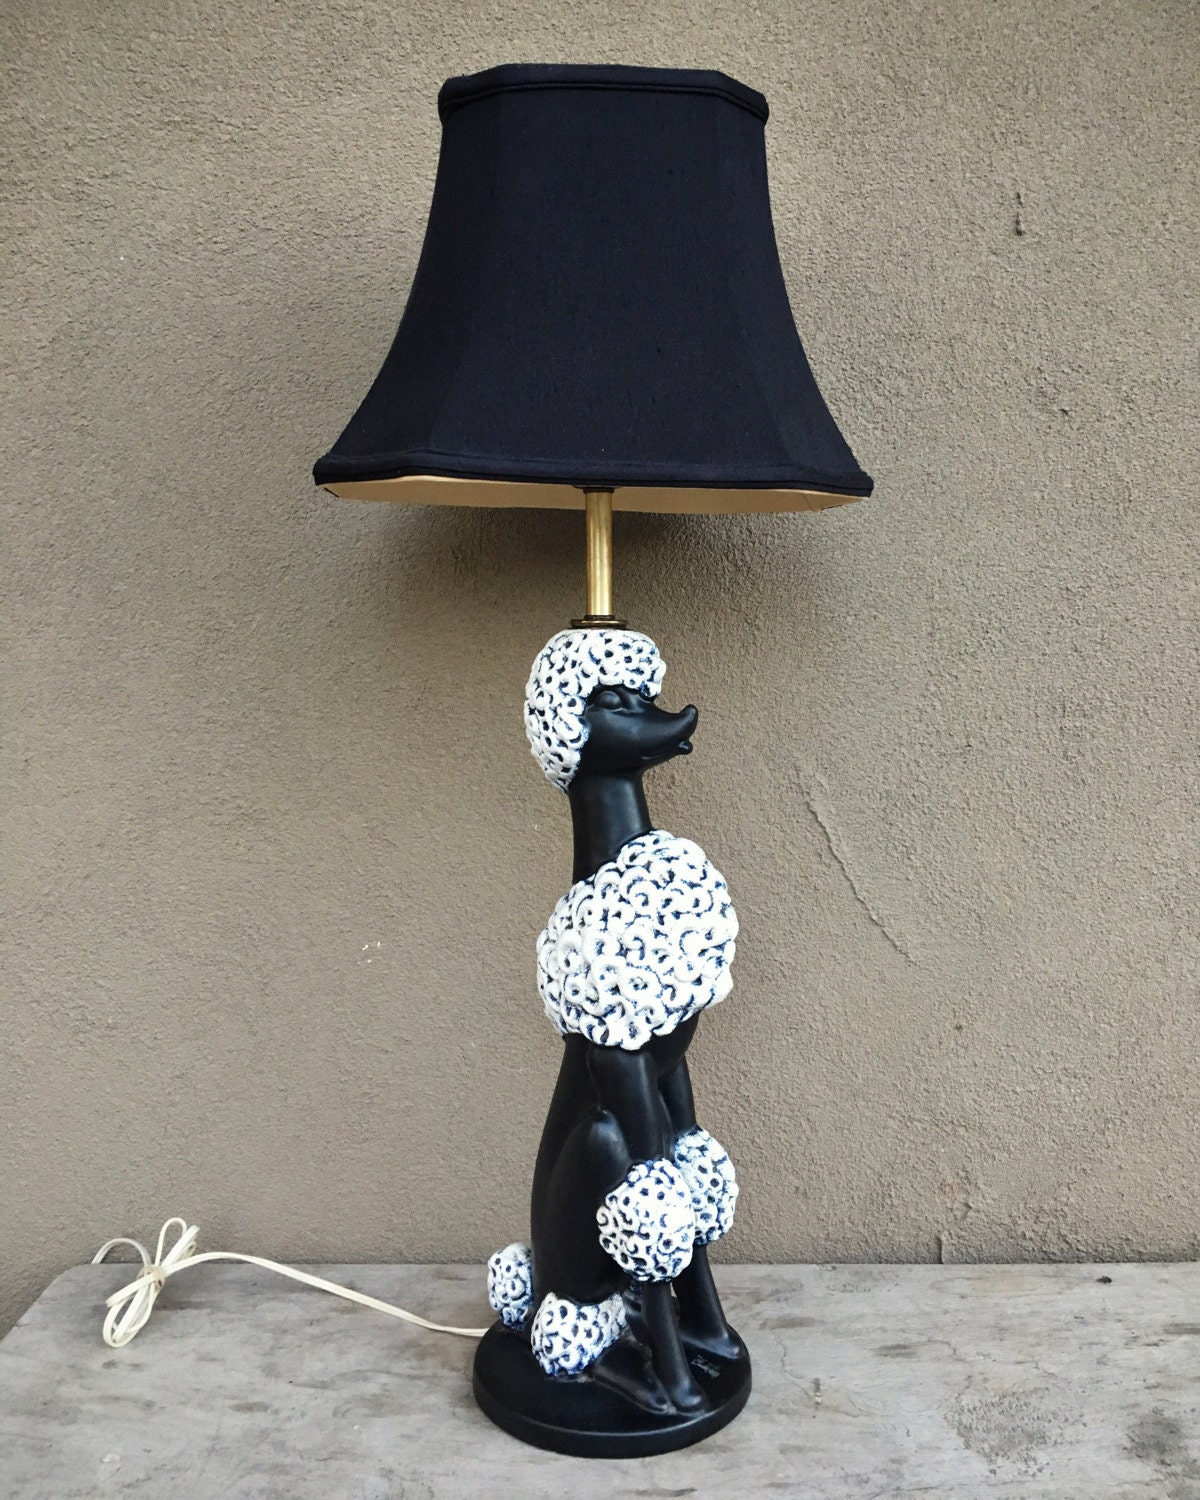 1950s ceramic poodle lamp with black silk shade vintage table 1950s ceramic poodle lamp with black silk shade vintage table lamp midcentury decor 1950s kitsch dog lover gift phyllis morris style geotapseo Images